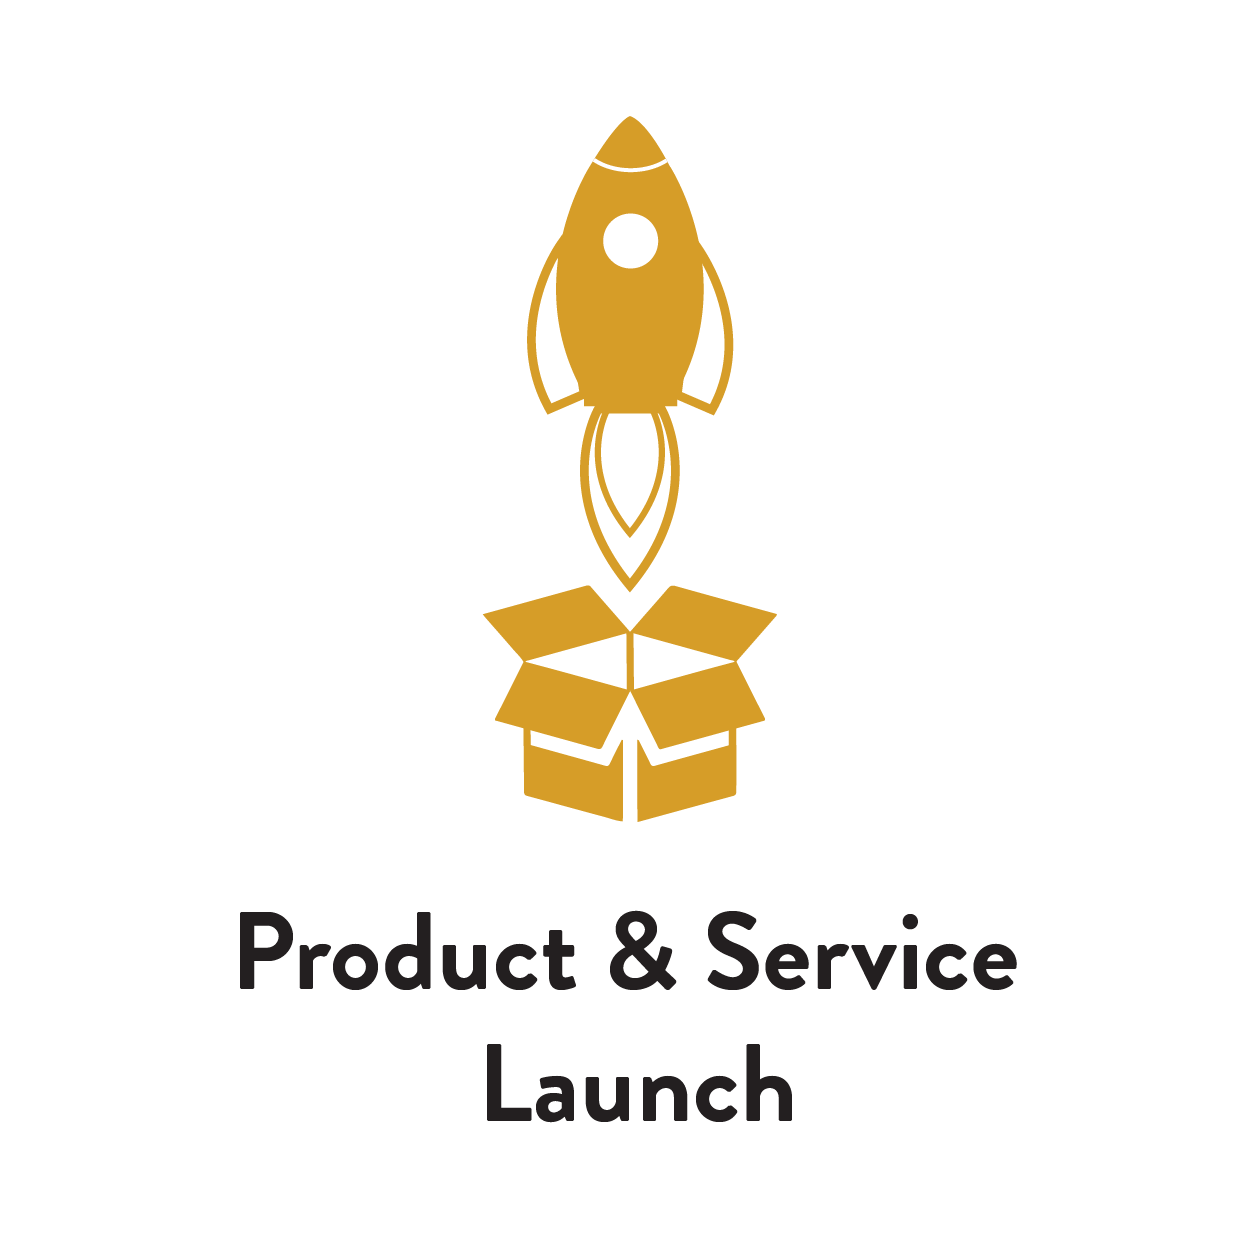 product launch-01-01.png